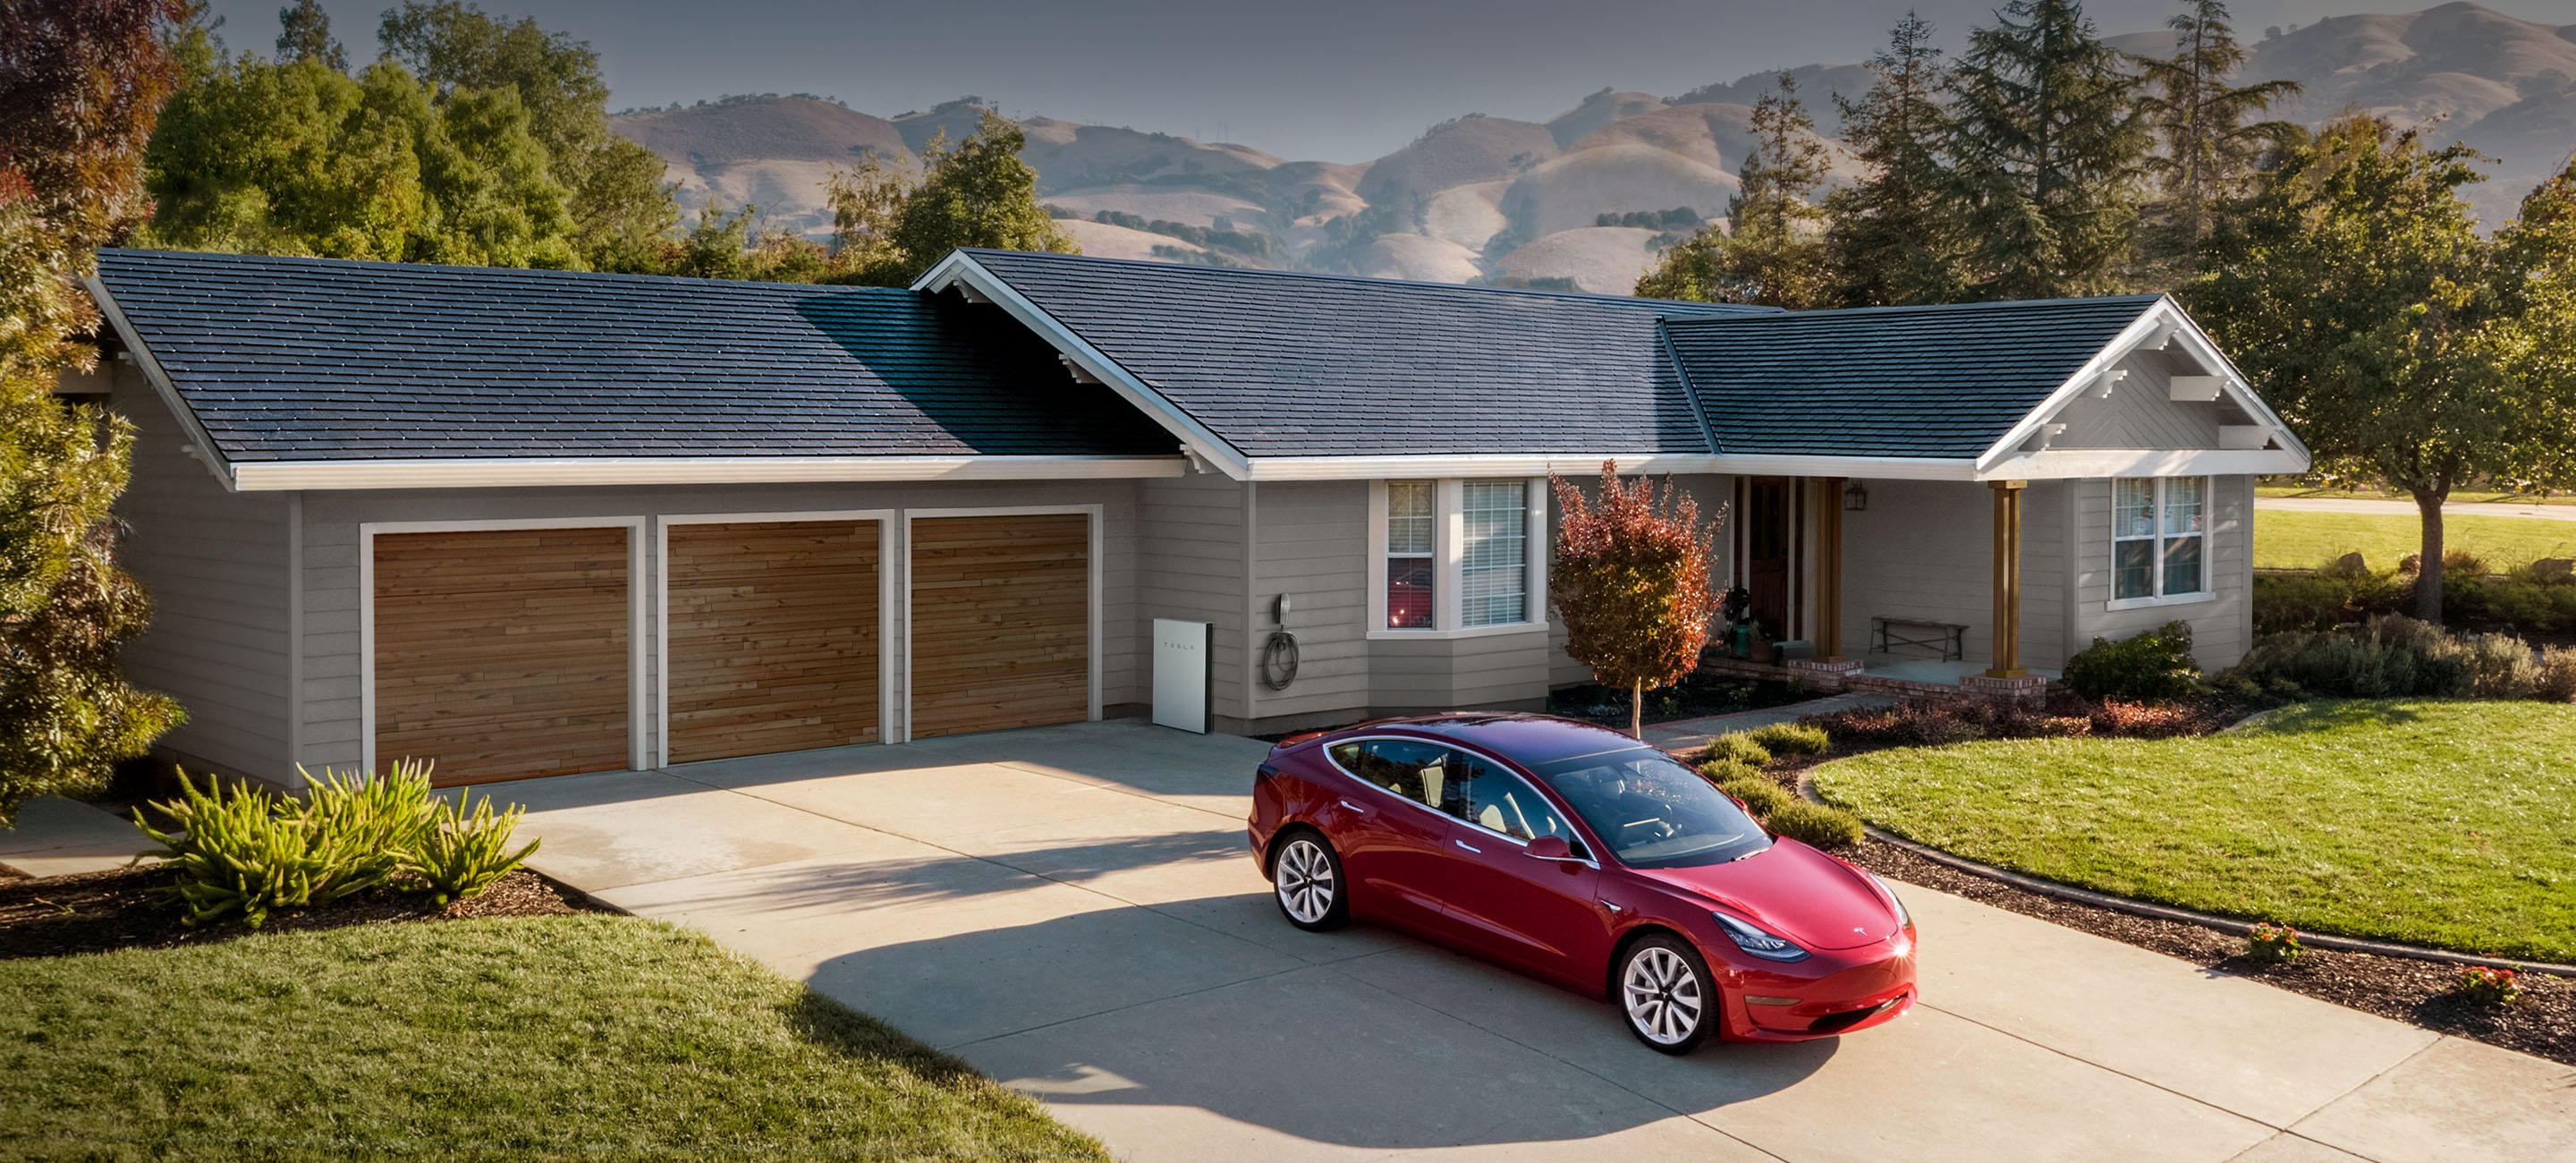 Tesla Redoubles Efforts To Expand Its Energy Business In 2019